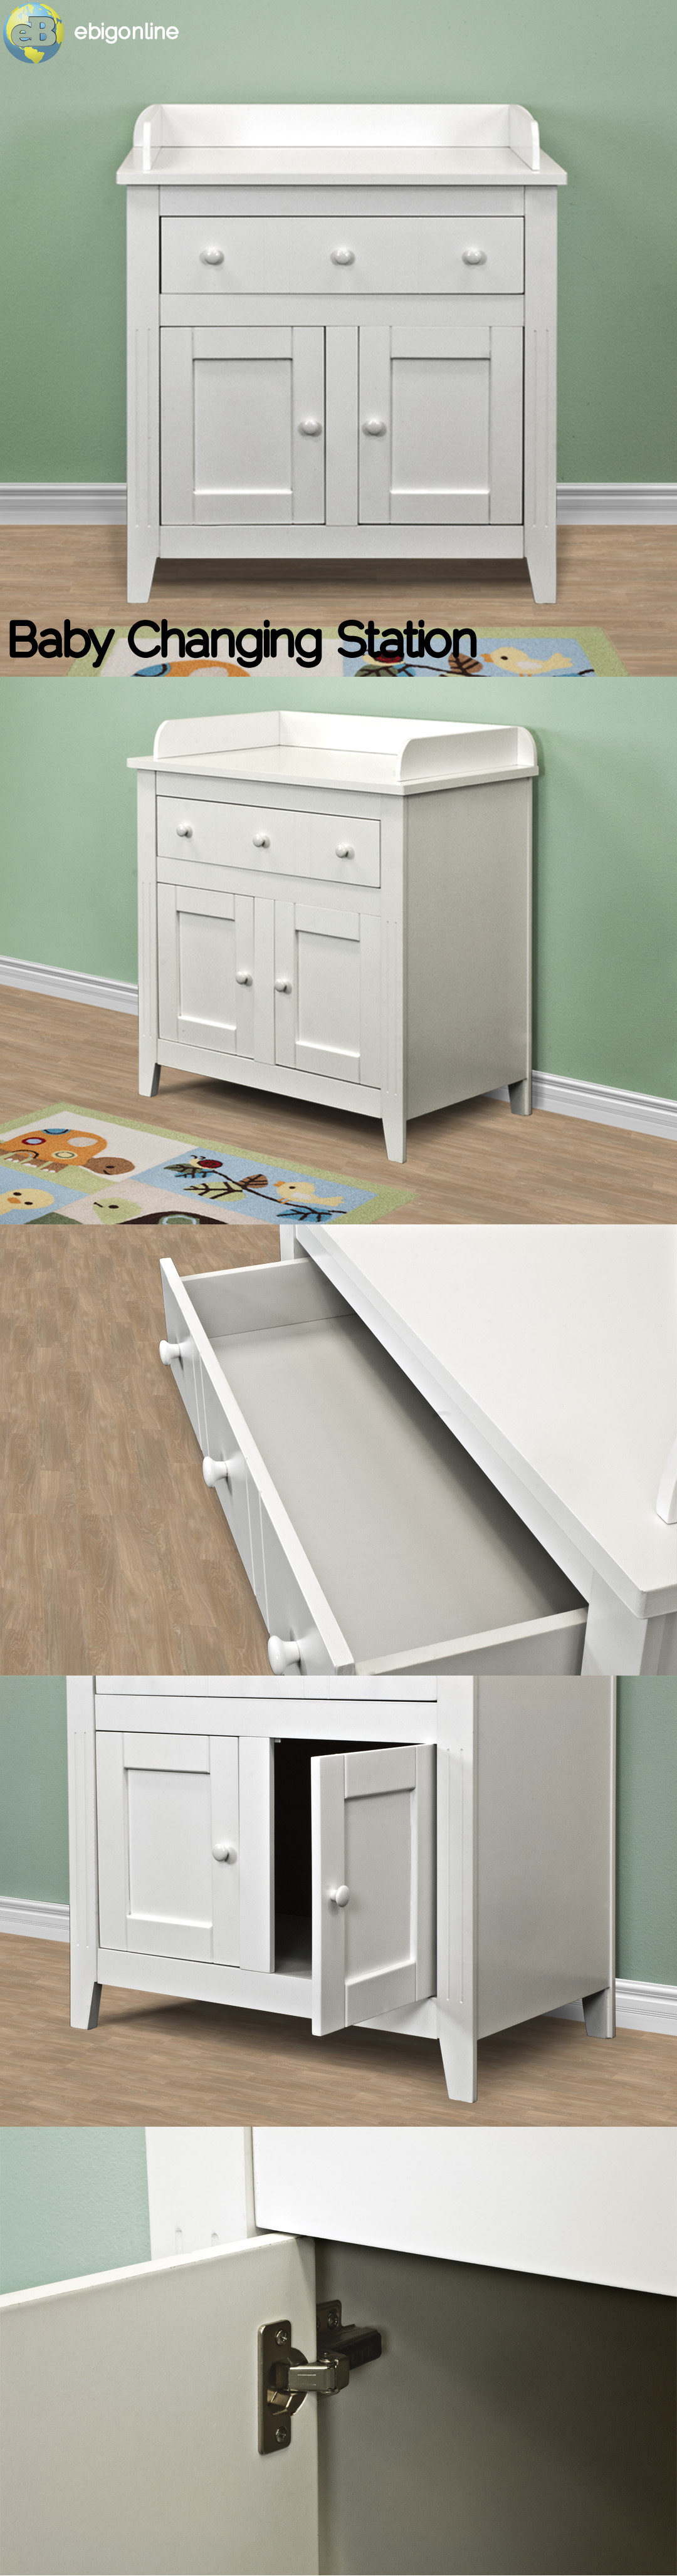 NEW SOLID WOOD WHITE BABY CHANGING TABLE DELUXE UNIT